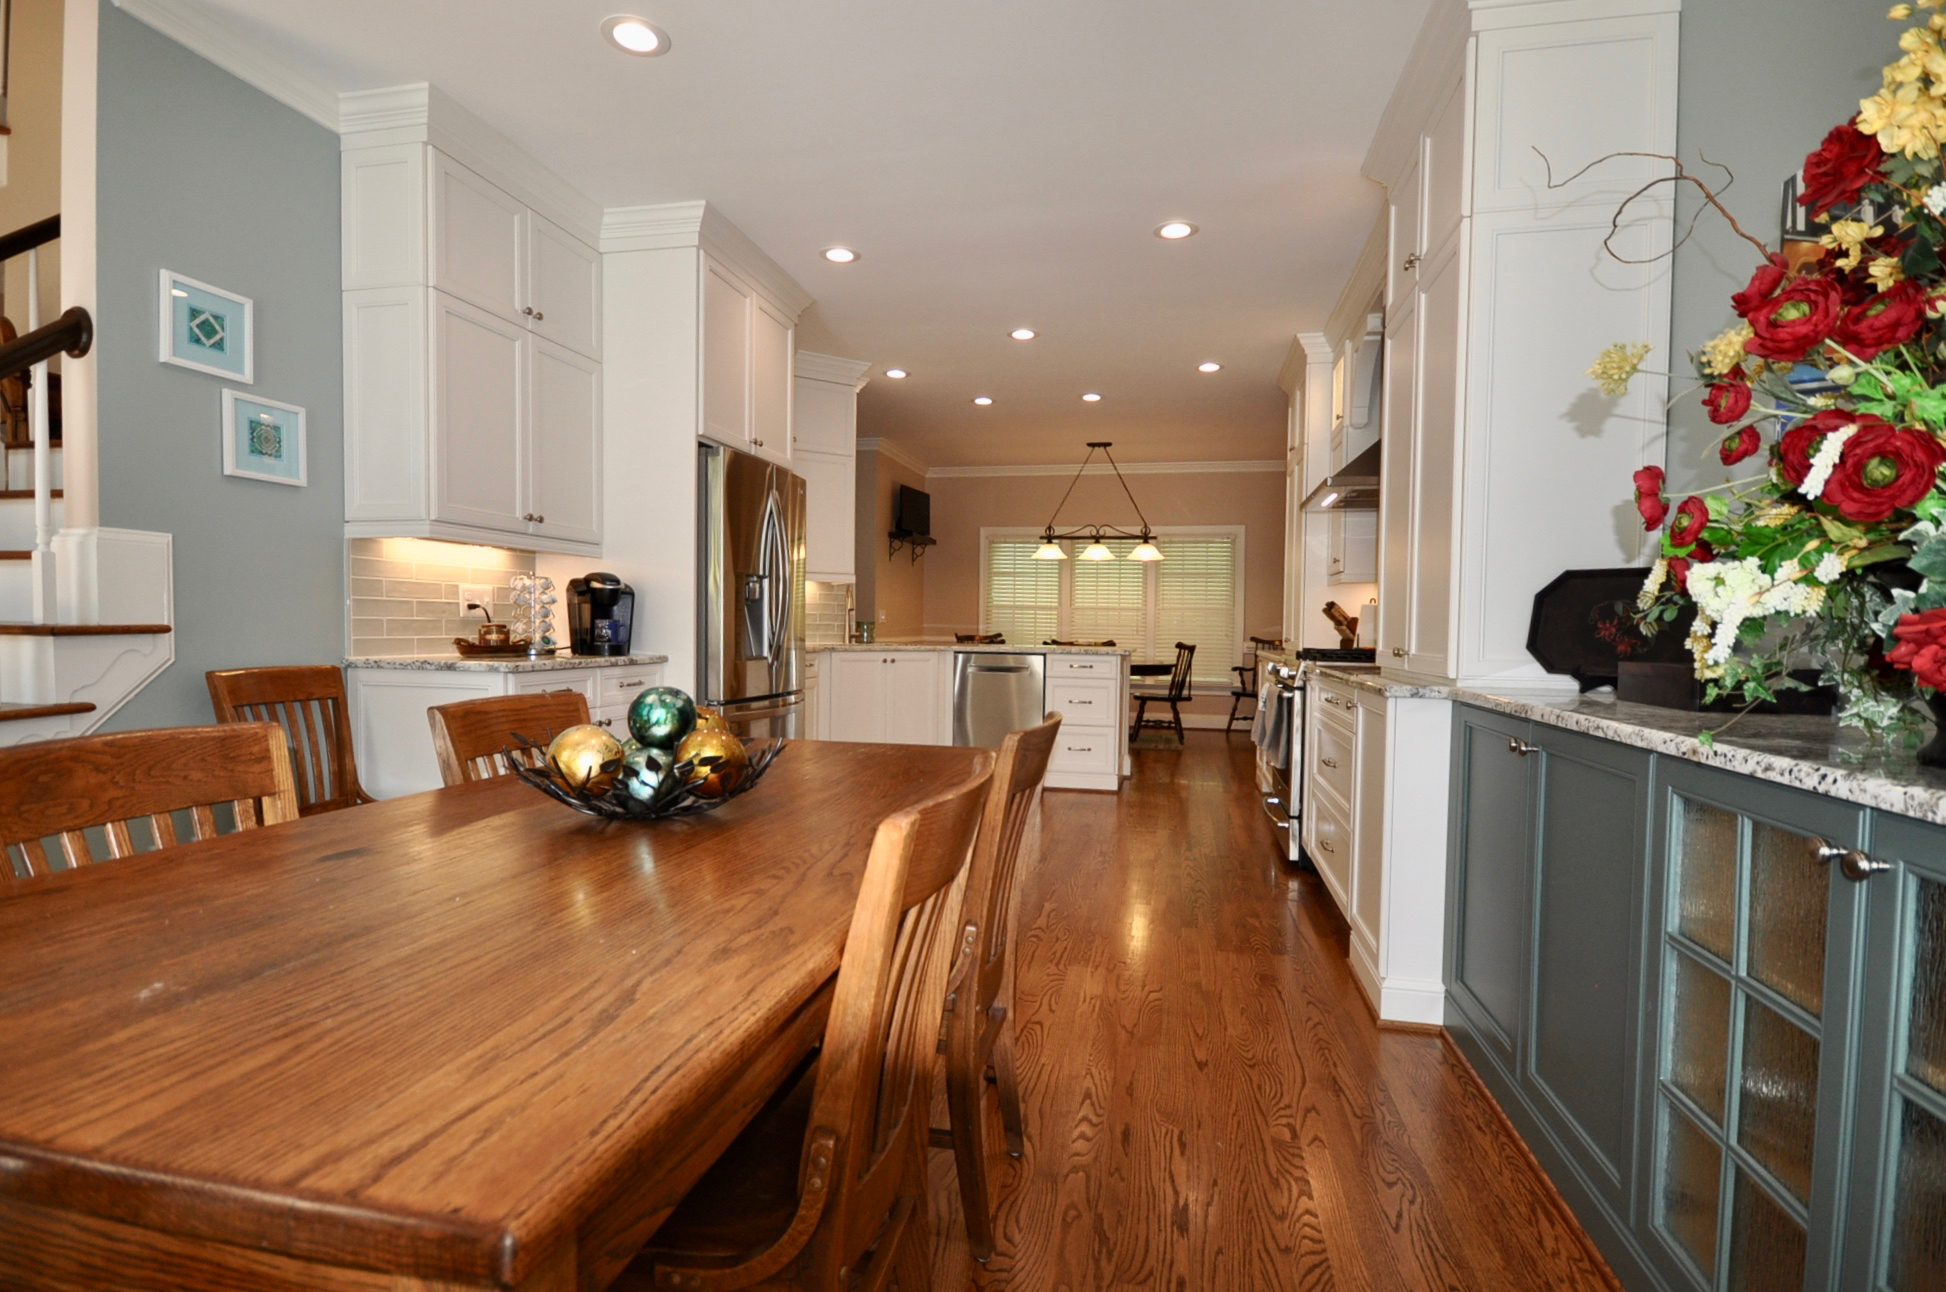 Kitchen Remodel by Riverbirch Remodeling of Raleigh NC